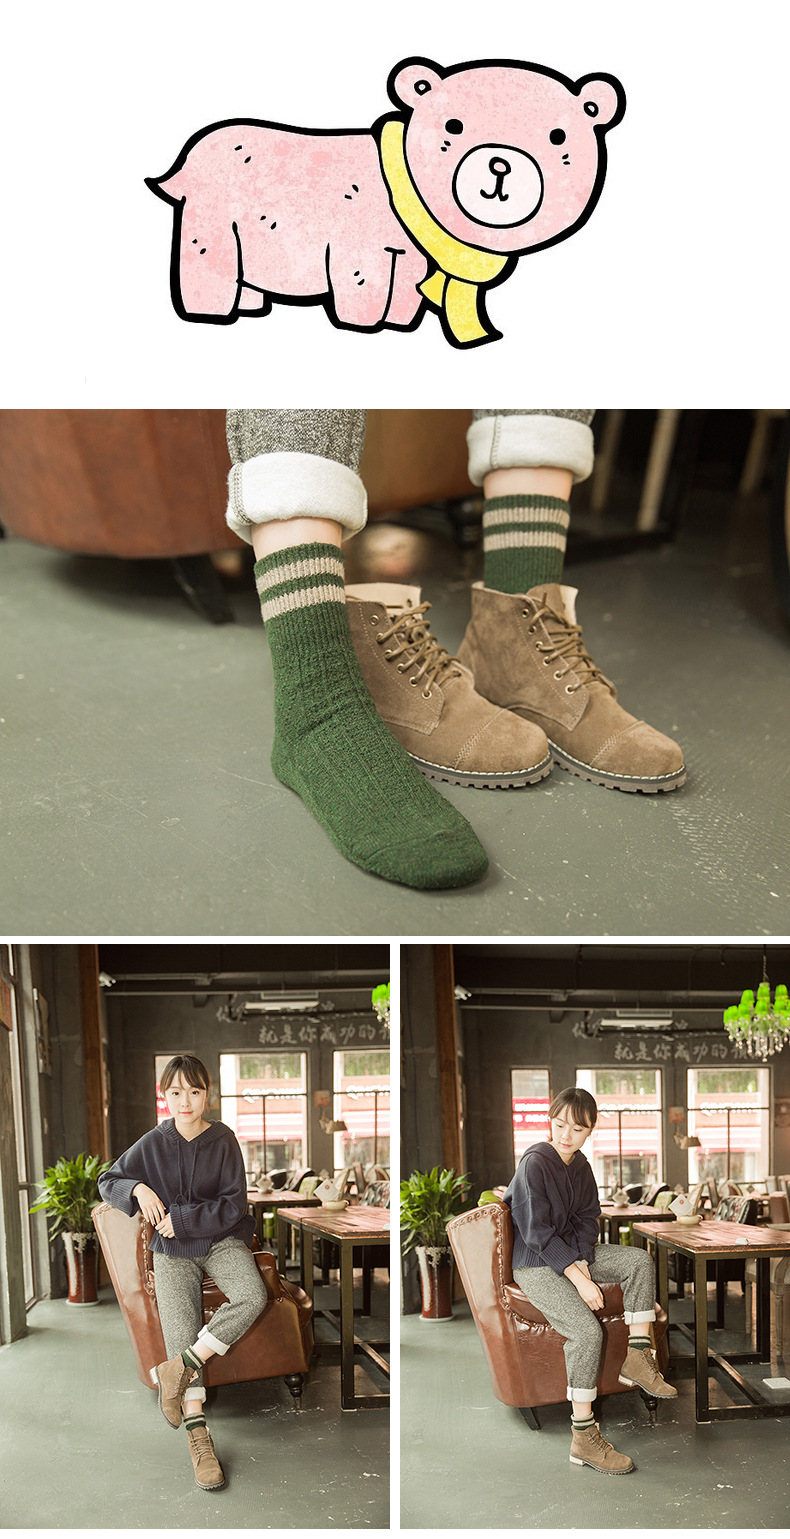 HTB1sMfNaiYrK1Rjy0Fdq6ACvVXa8 - 5 Colors New Fashion Retro Wool Women Socks Autumn Winter Wamer Cotton Girl Socks Female Japanese Tube Sock Students Hosiery